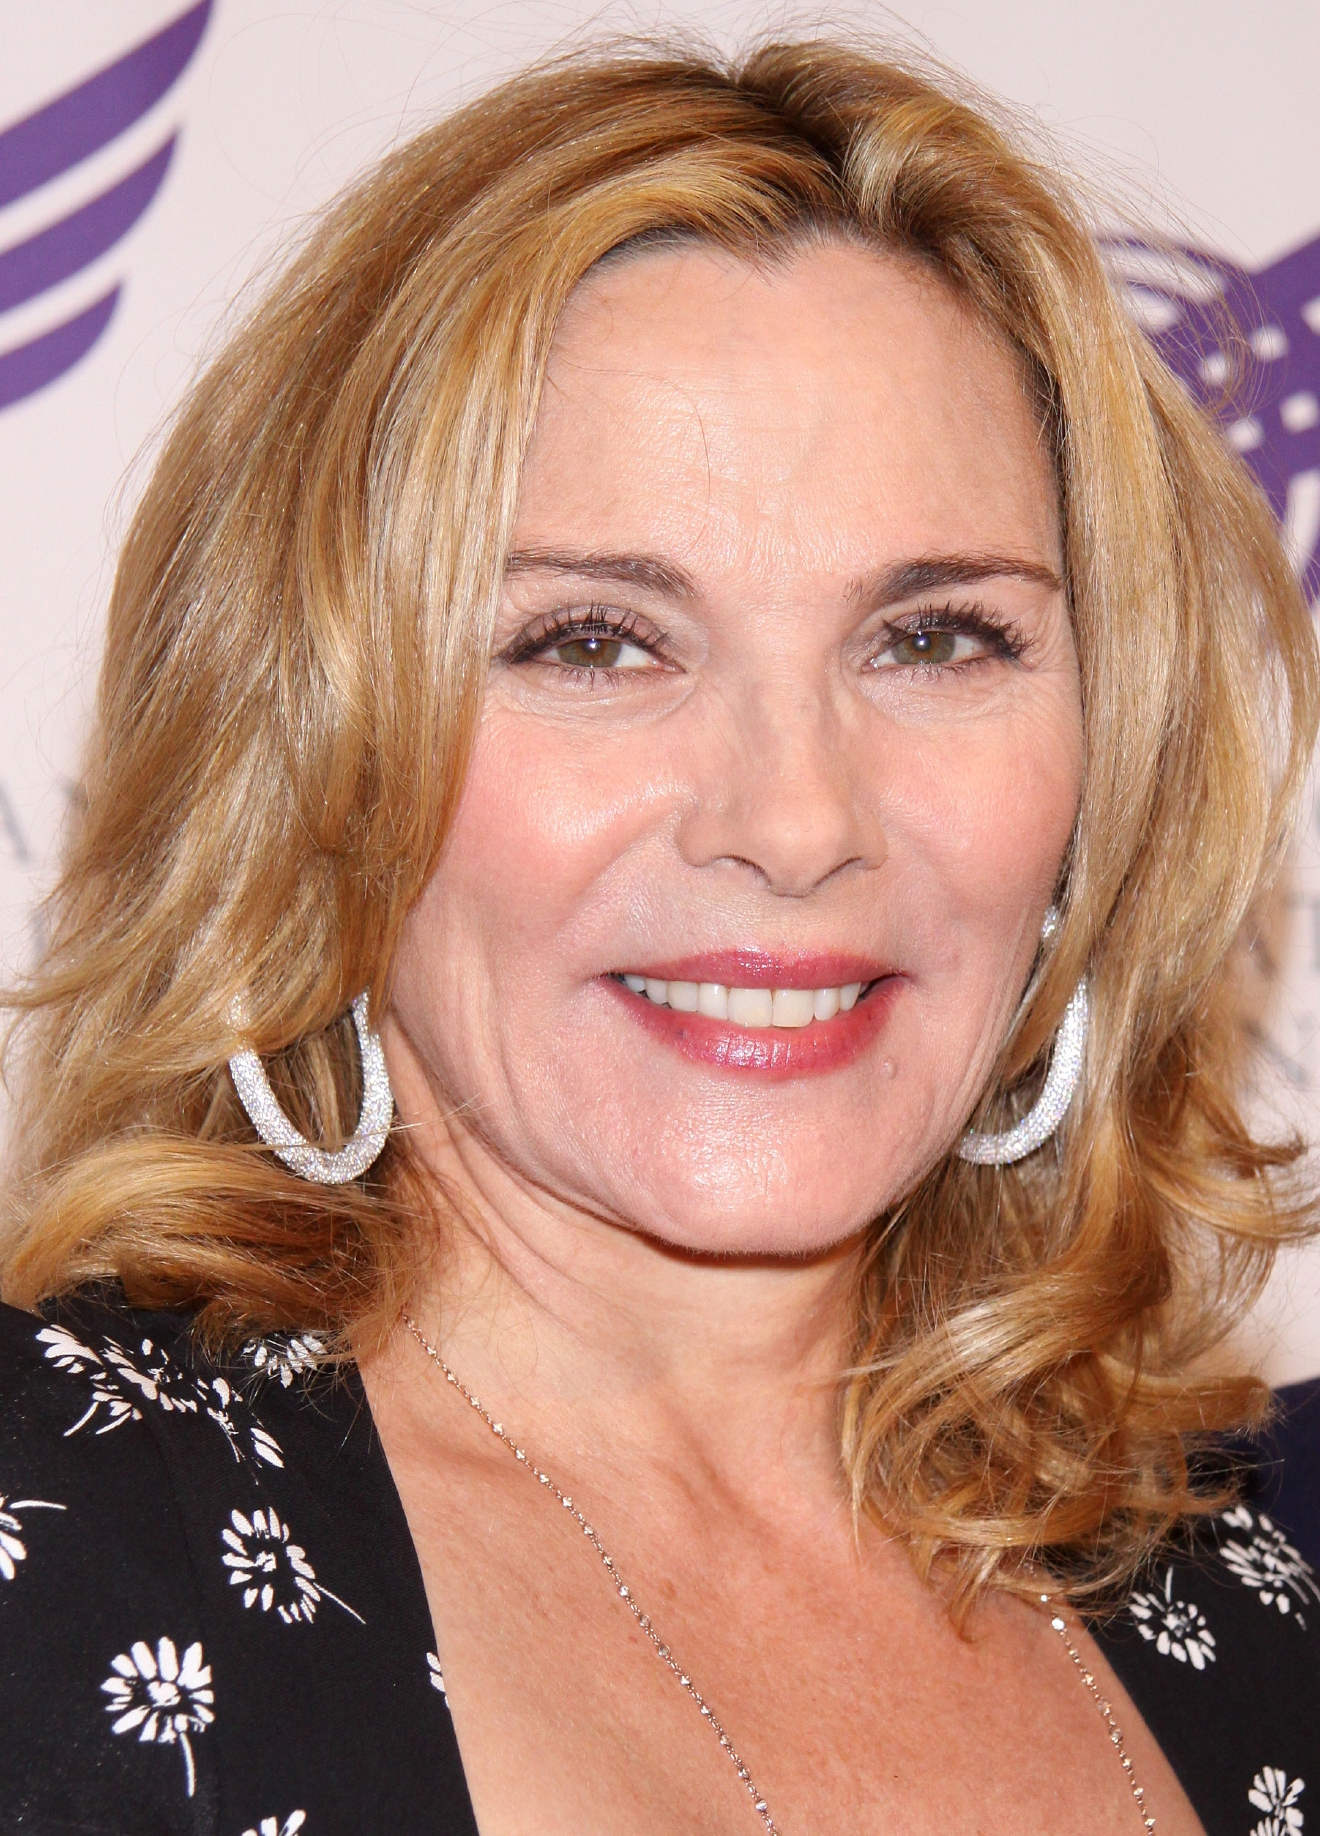 PHOTOS | Happy 60th, Kim Cattrall! | WJLA Kim Cattrall